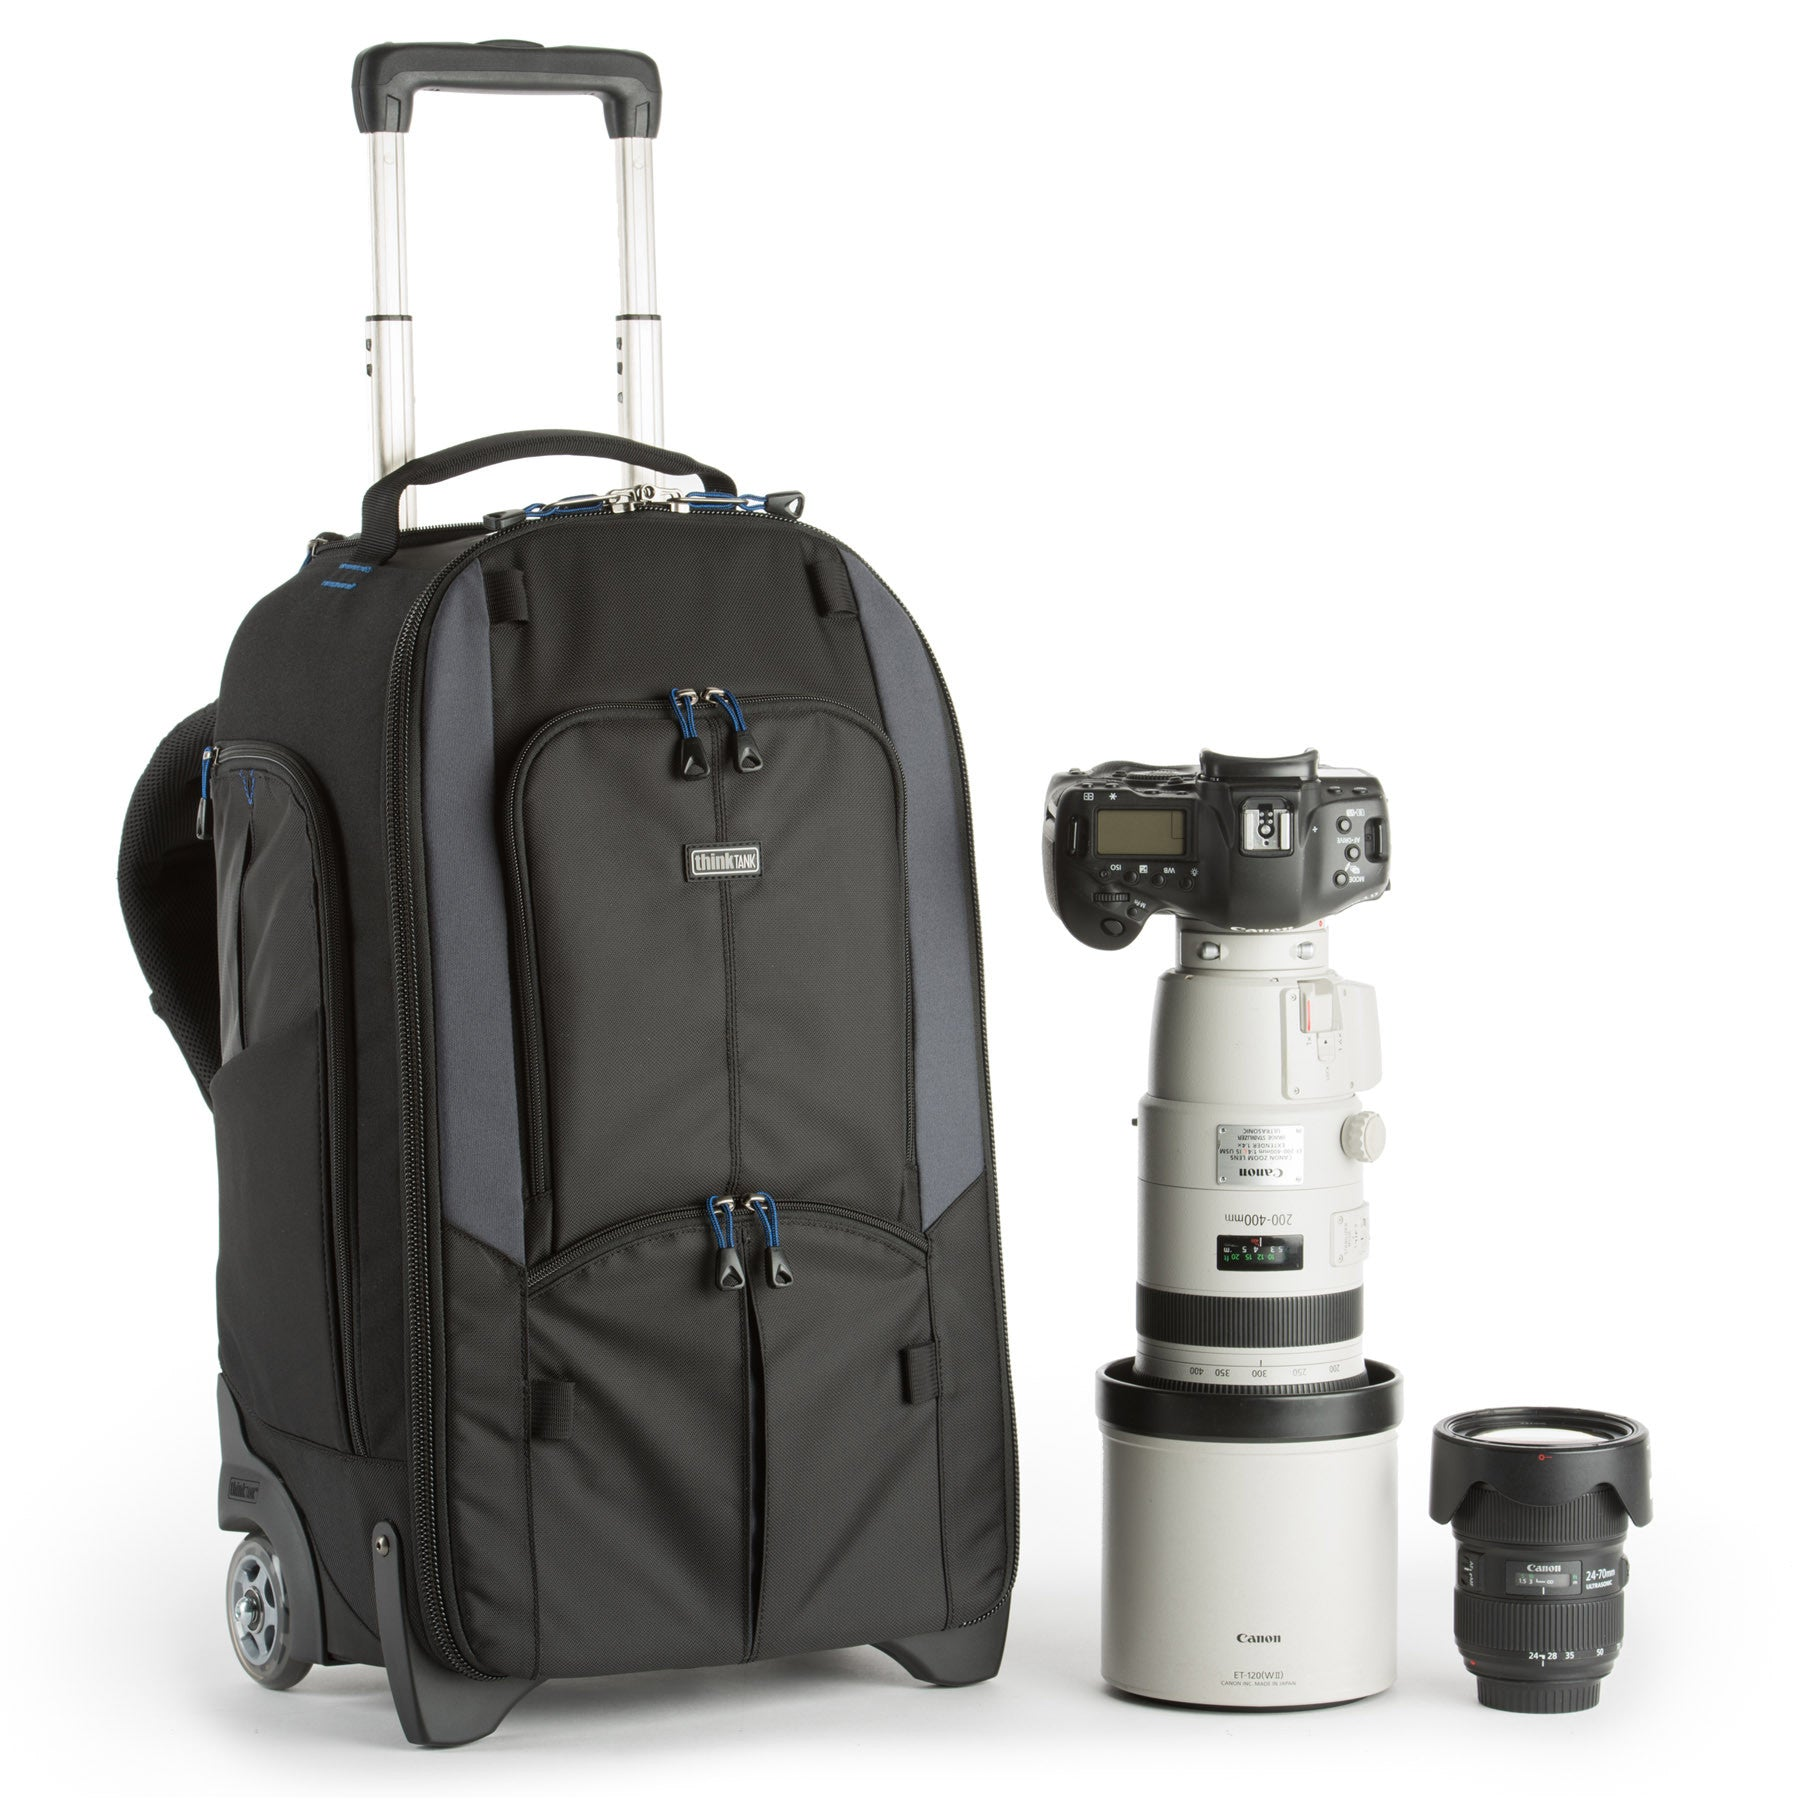 New StreetWalker Rolling Backpack and Upgraded StreetWalker Series Backpacks Released